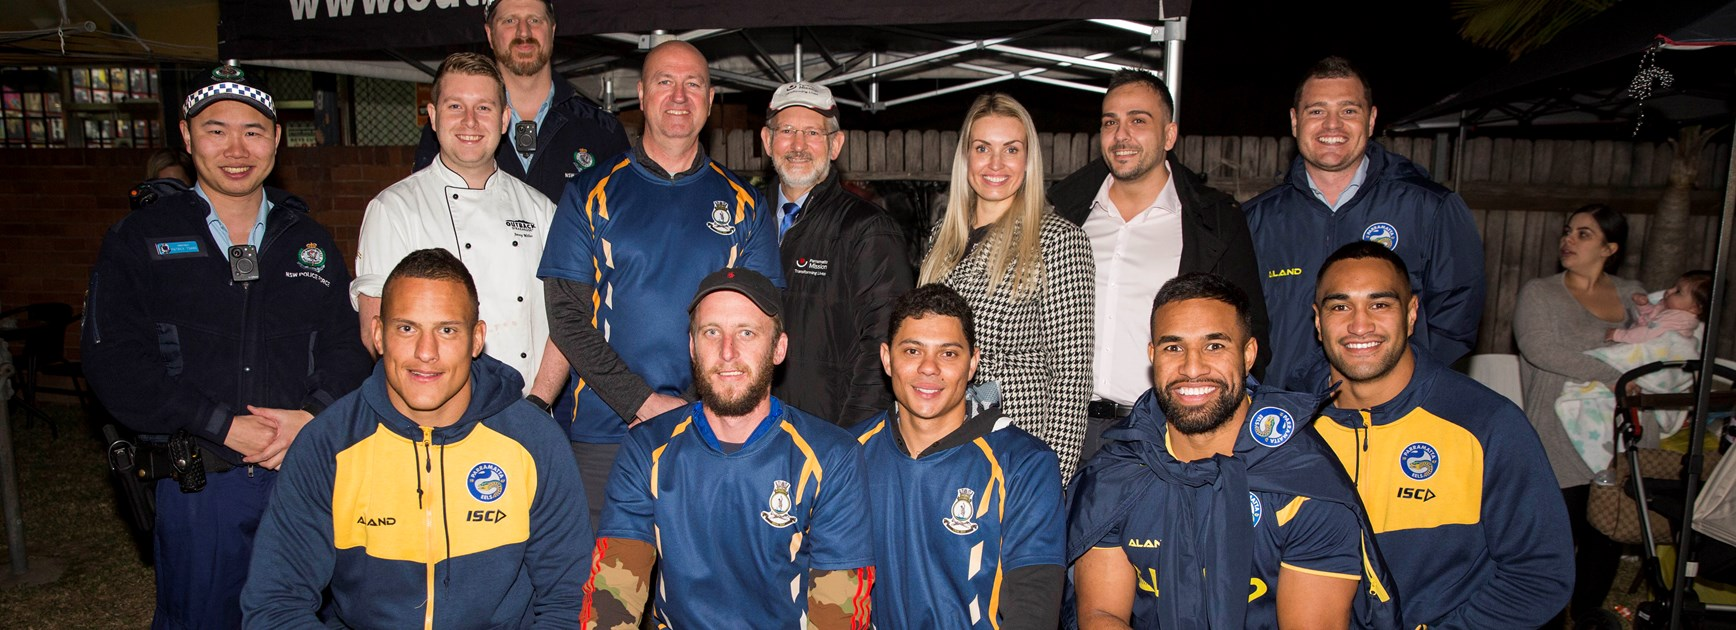 Eels visit Parramatta Mission Youth Hub